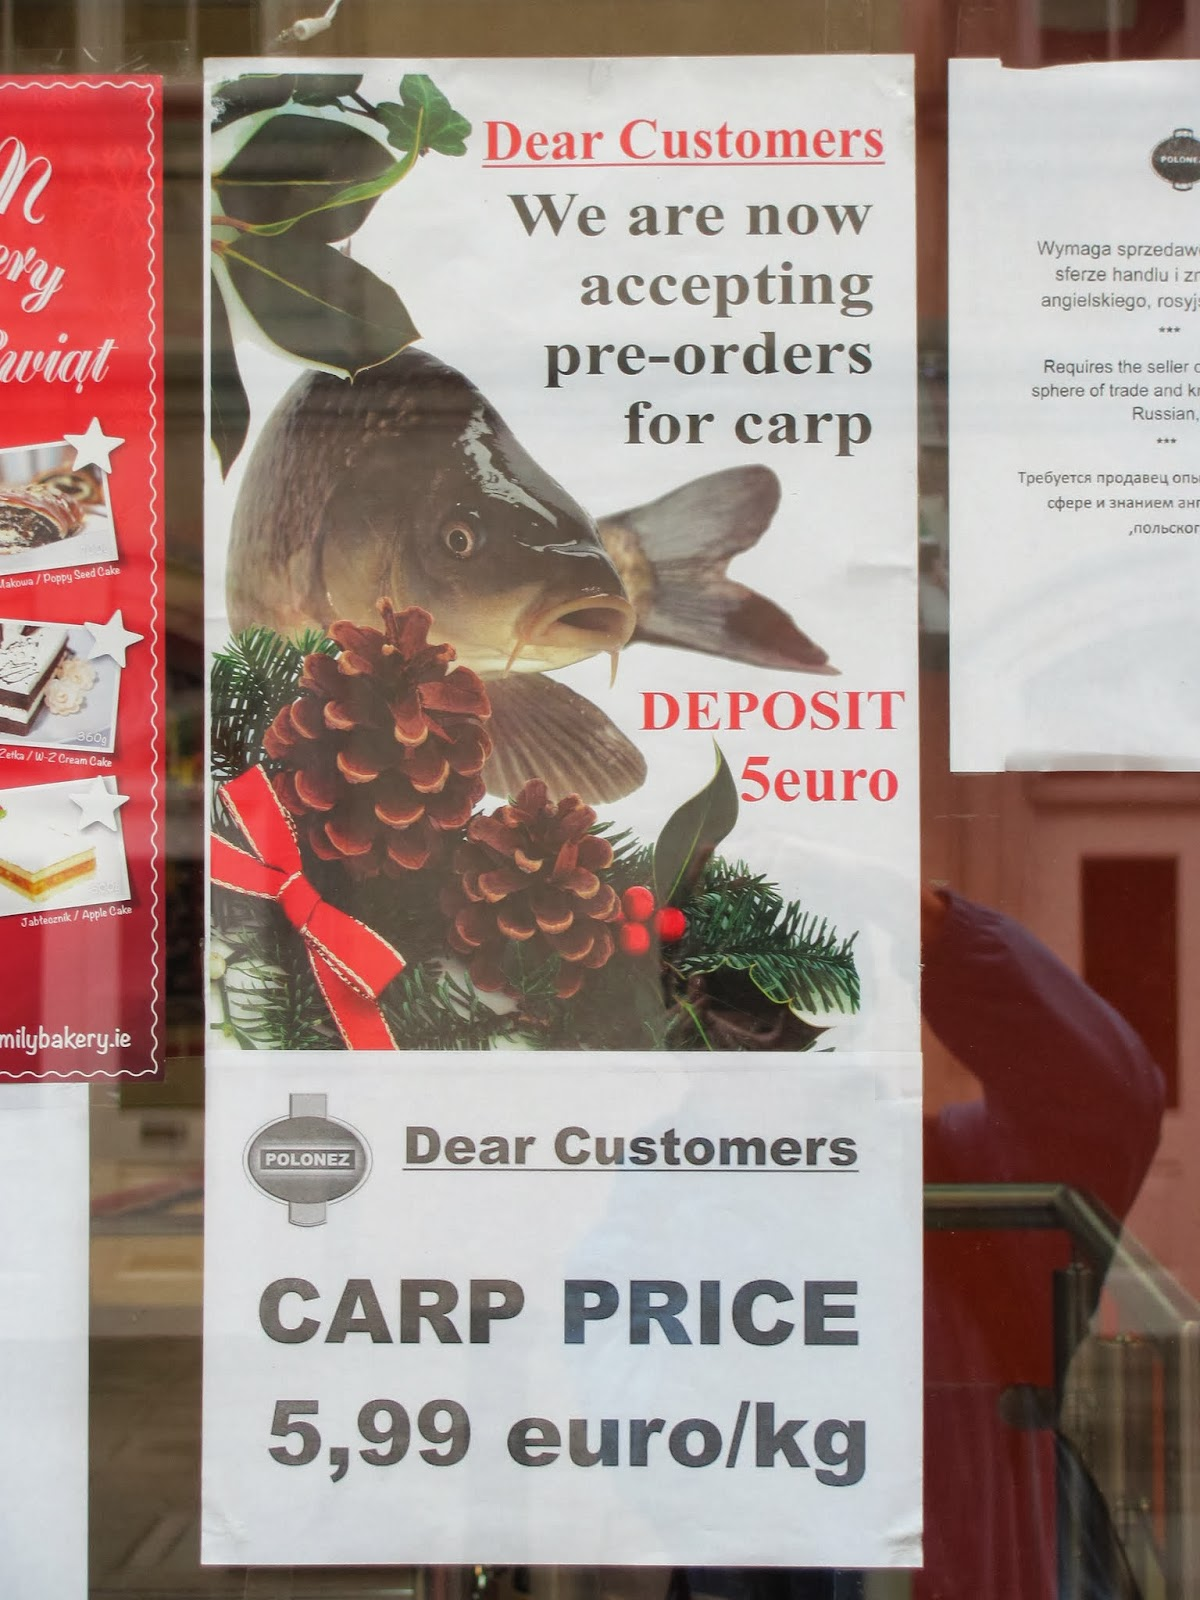 Advertisement for carp at Polish market in Dublin